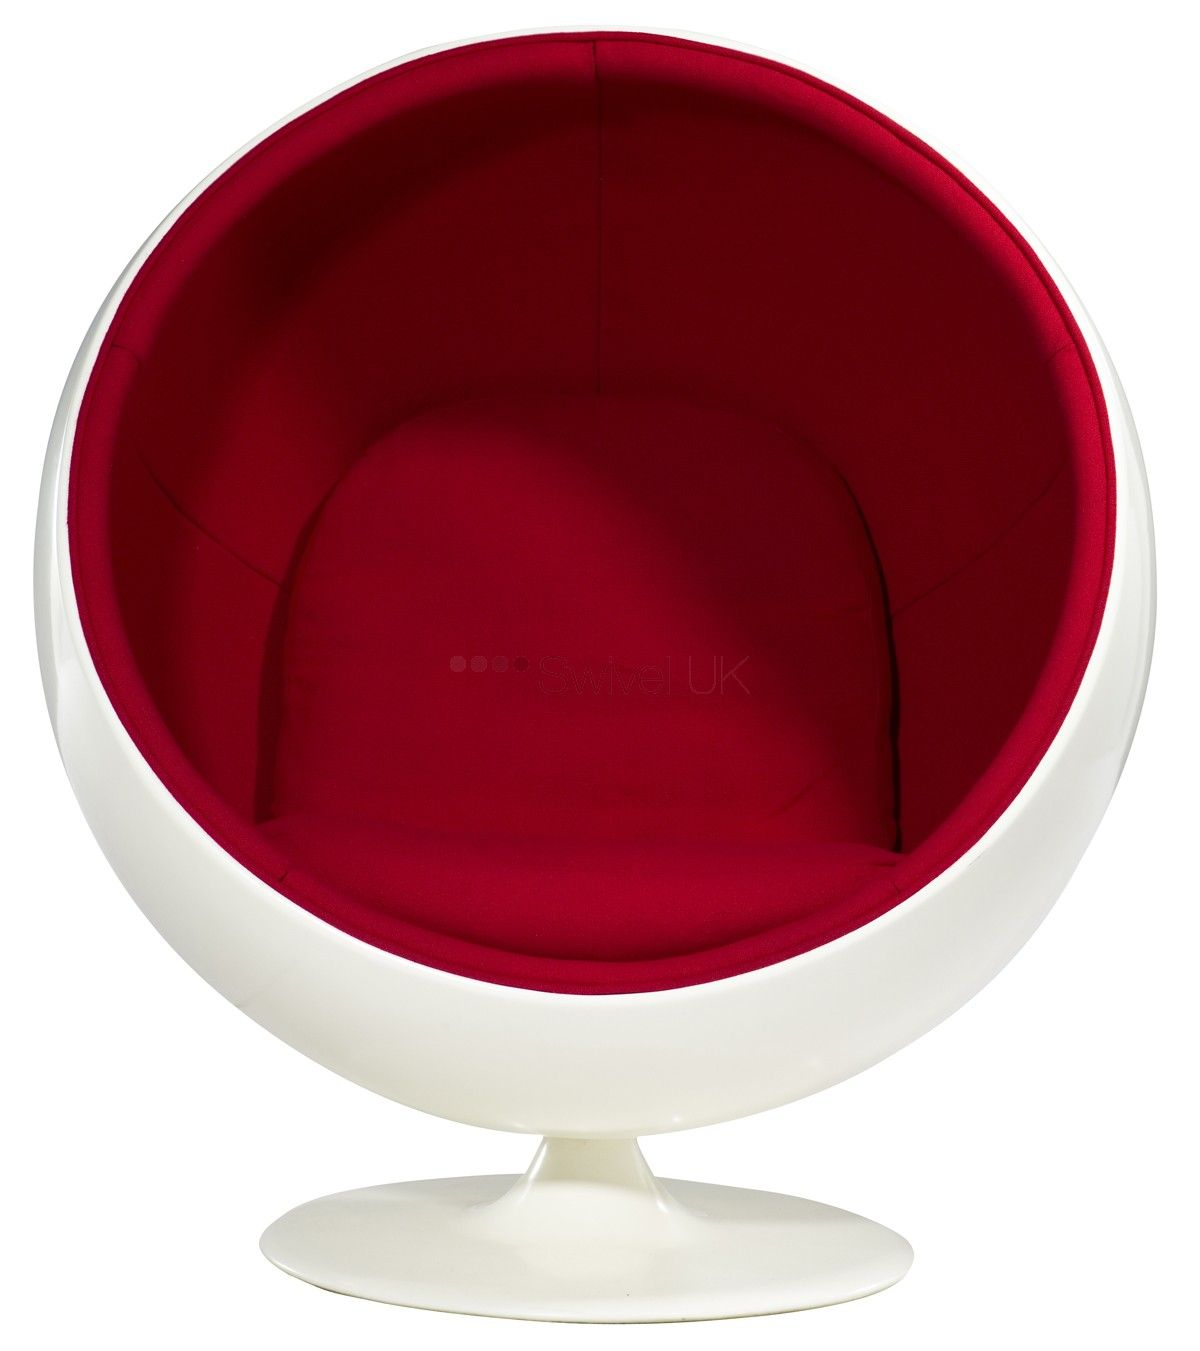 eero aarnio  ball chair  swivelukcom  adelta  pinterest  - find this pin and more on adelta by reprof